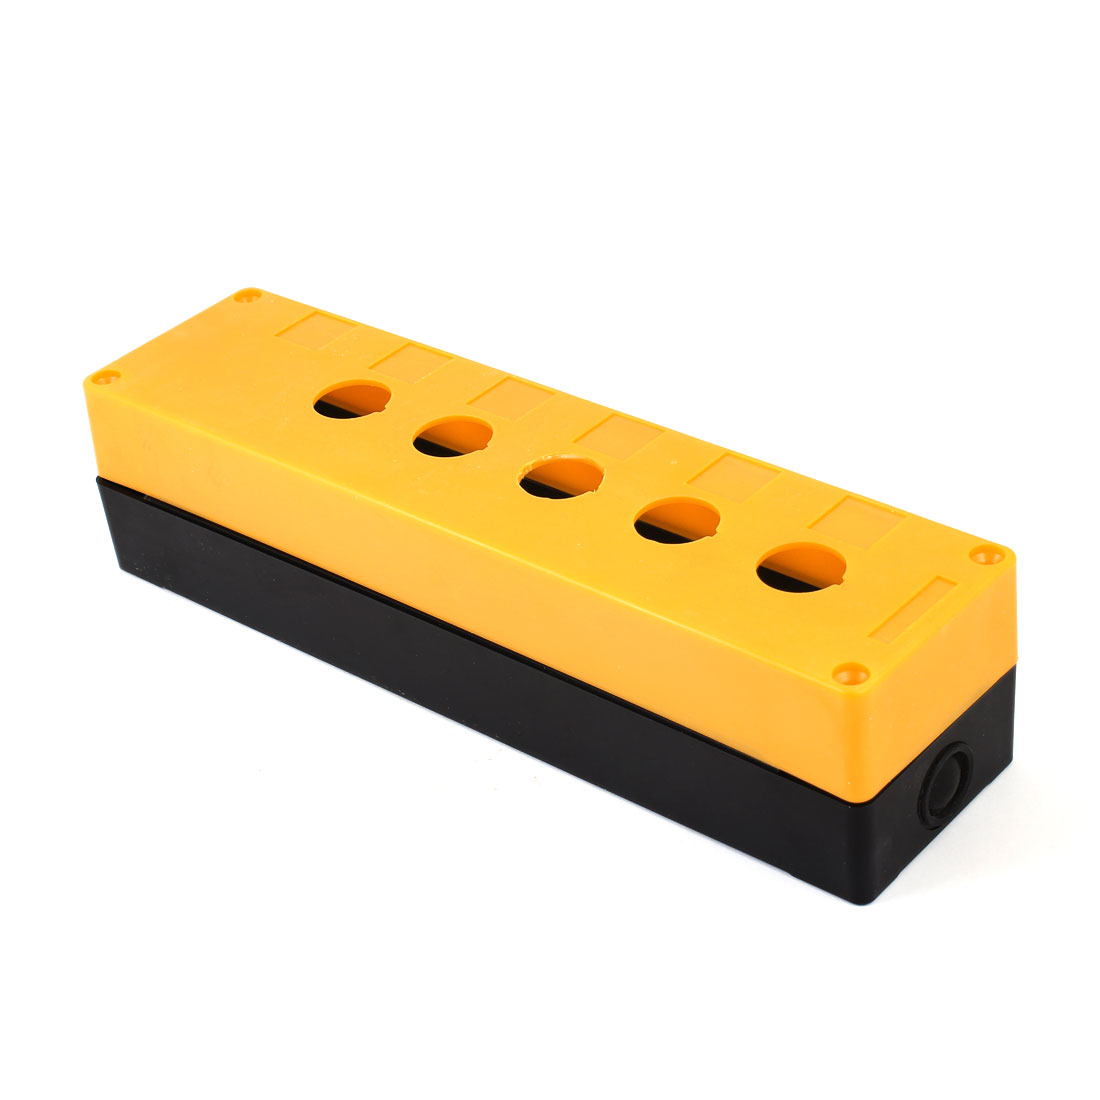 Plastic 5 Hole Design Electronic DIY Junction Box Orange Black 278 x 70 x 64mm